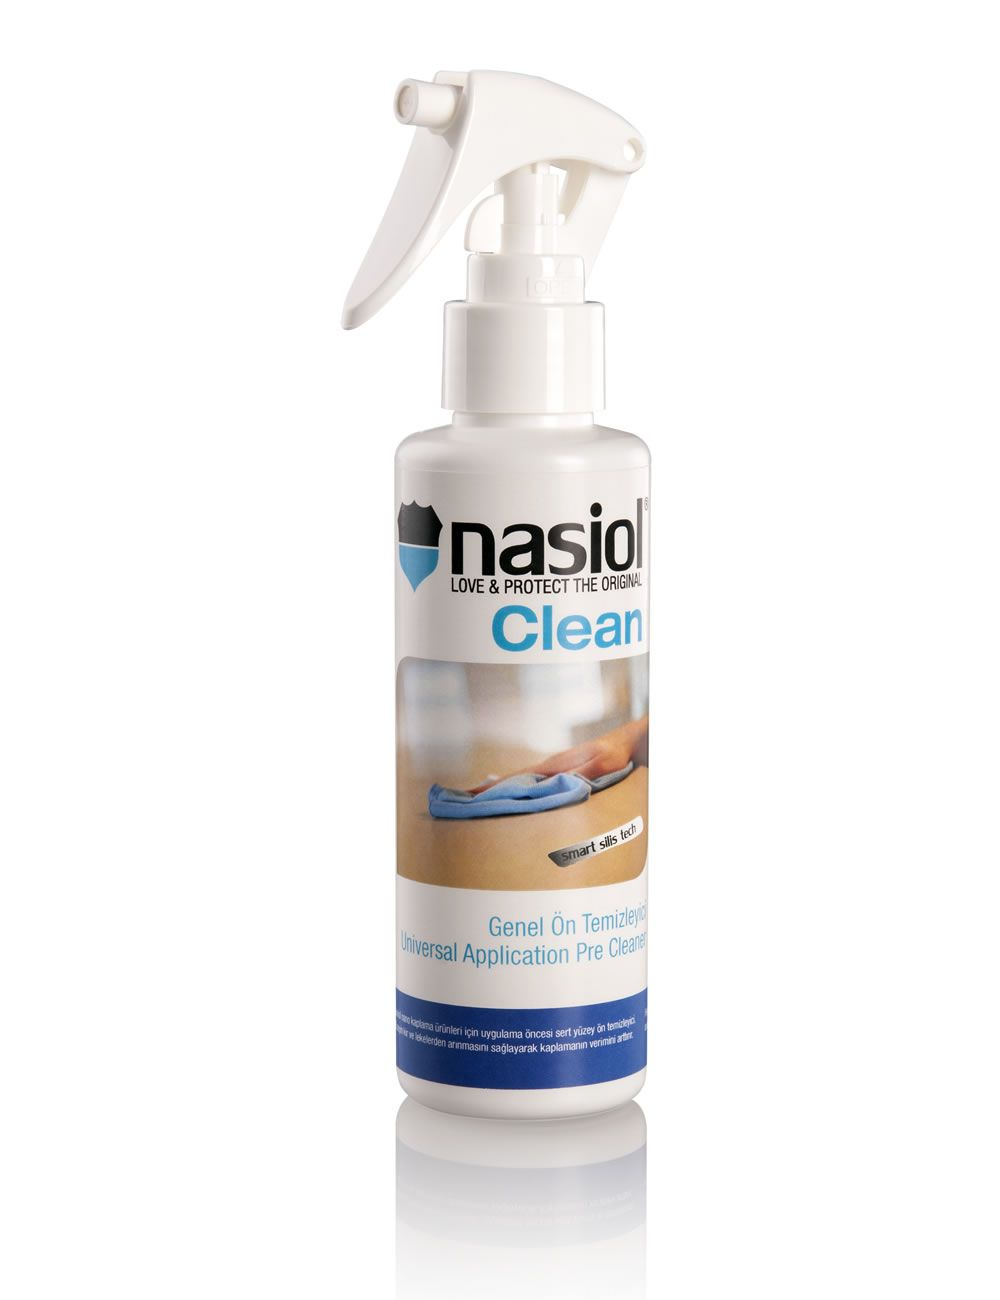 NASIOL Clean - Limpeza Profunda de todas as superfícies 150ml  - Loja Go Eco Wash